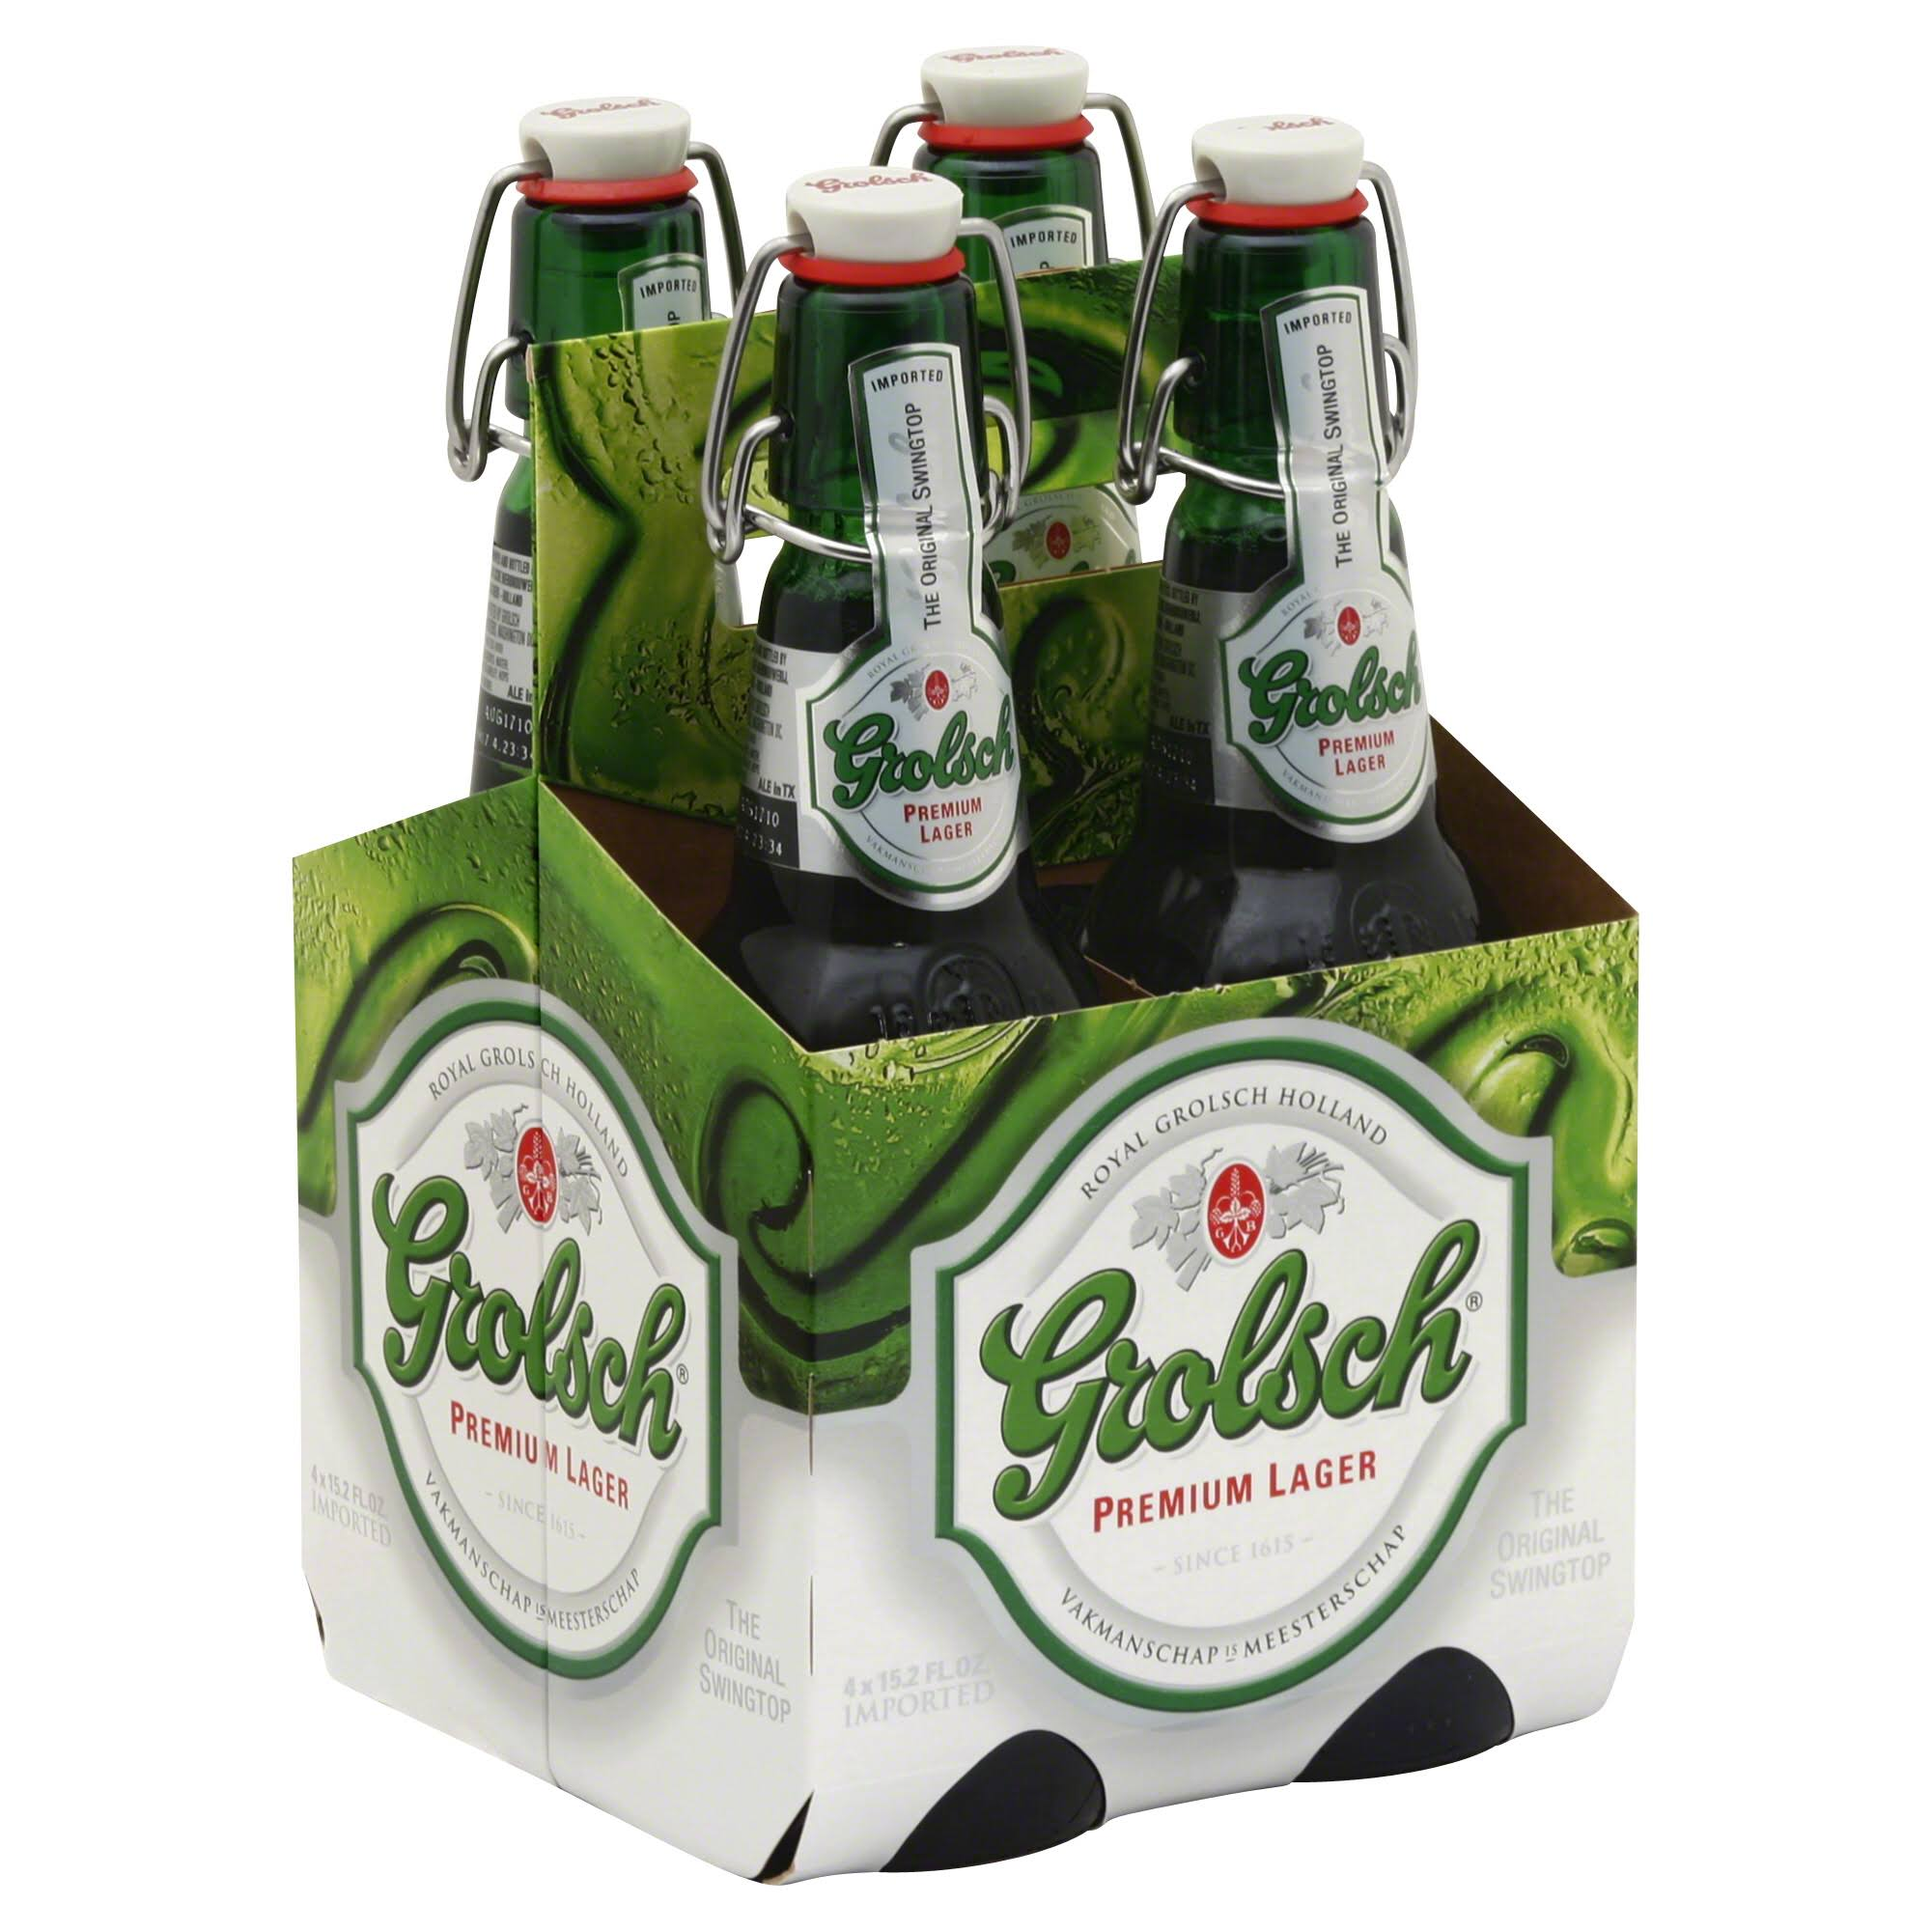 Grolsch Swingtop Beer - 4 x 16oz